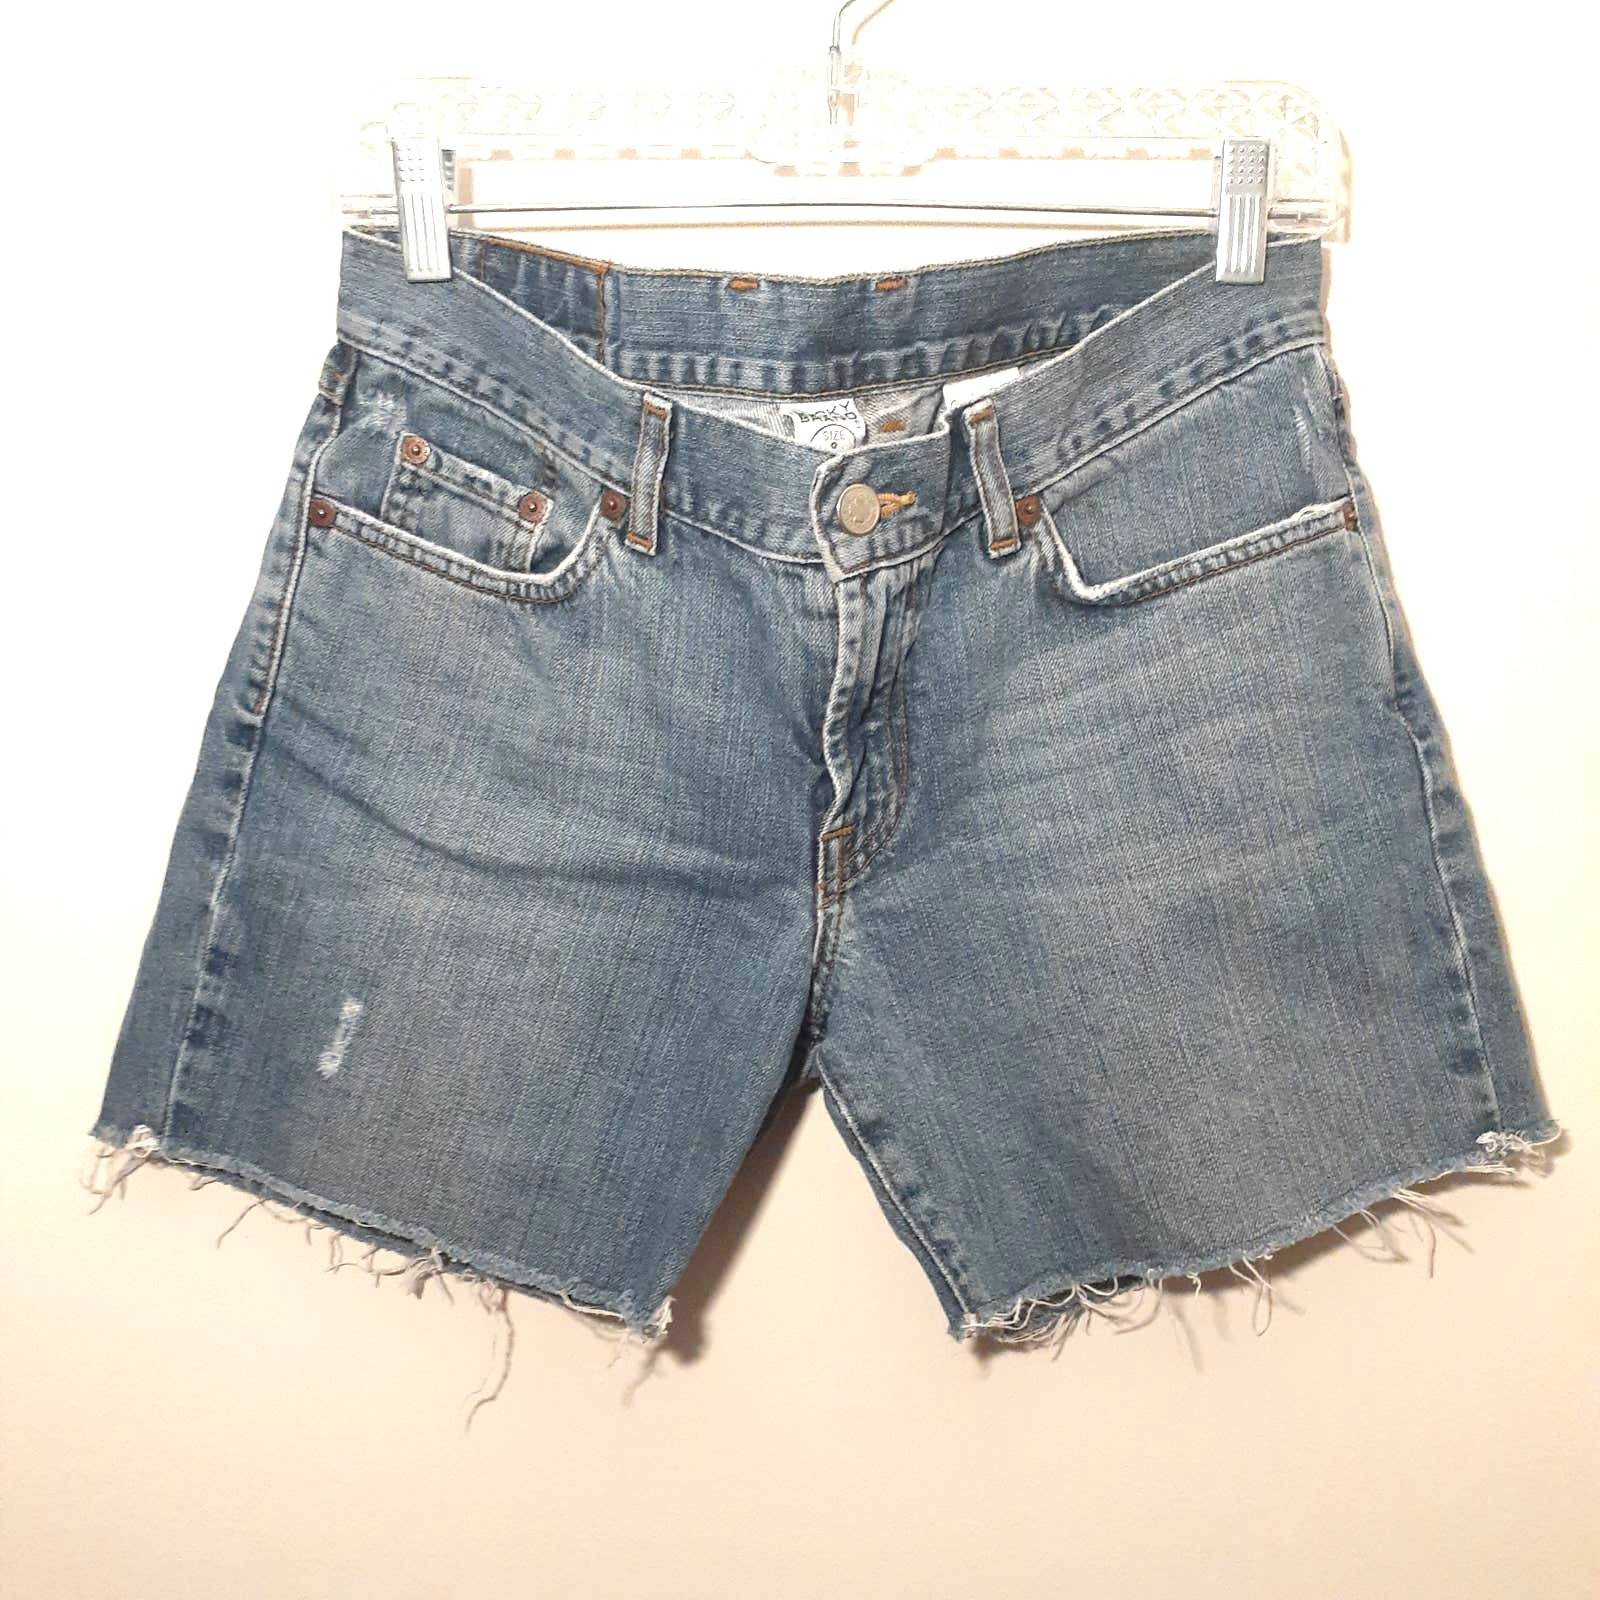 LUCKY BRAND Charmed Fit cutoff shorts 8